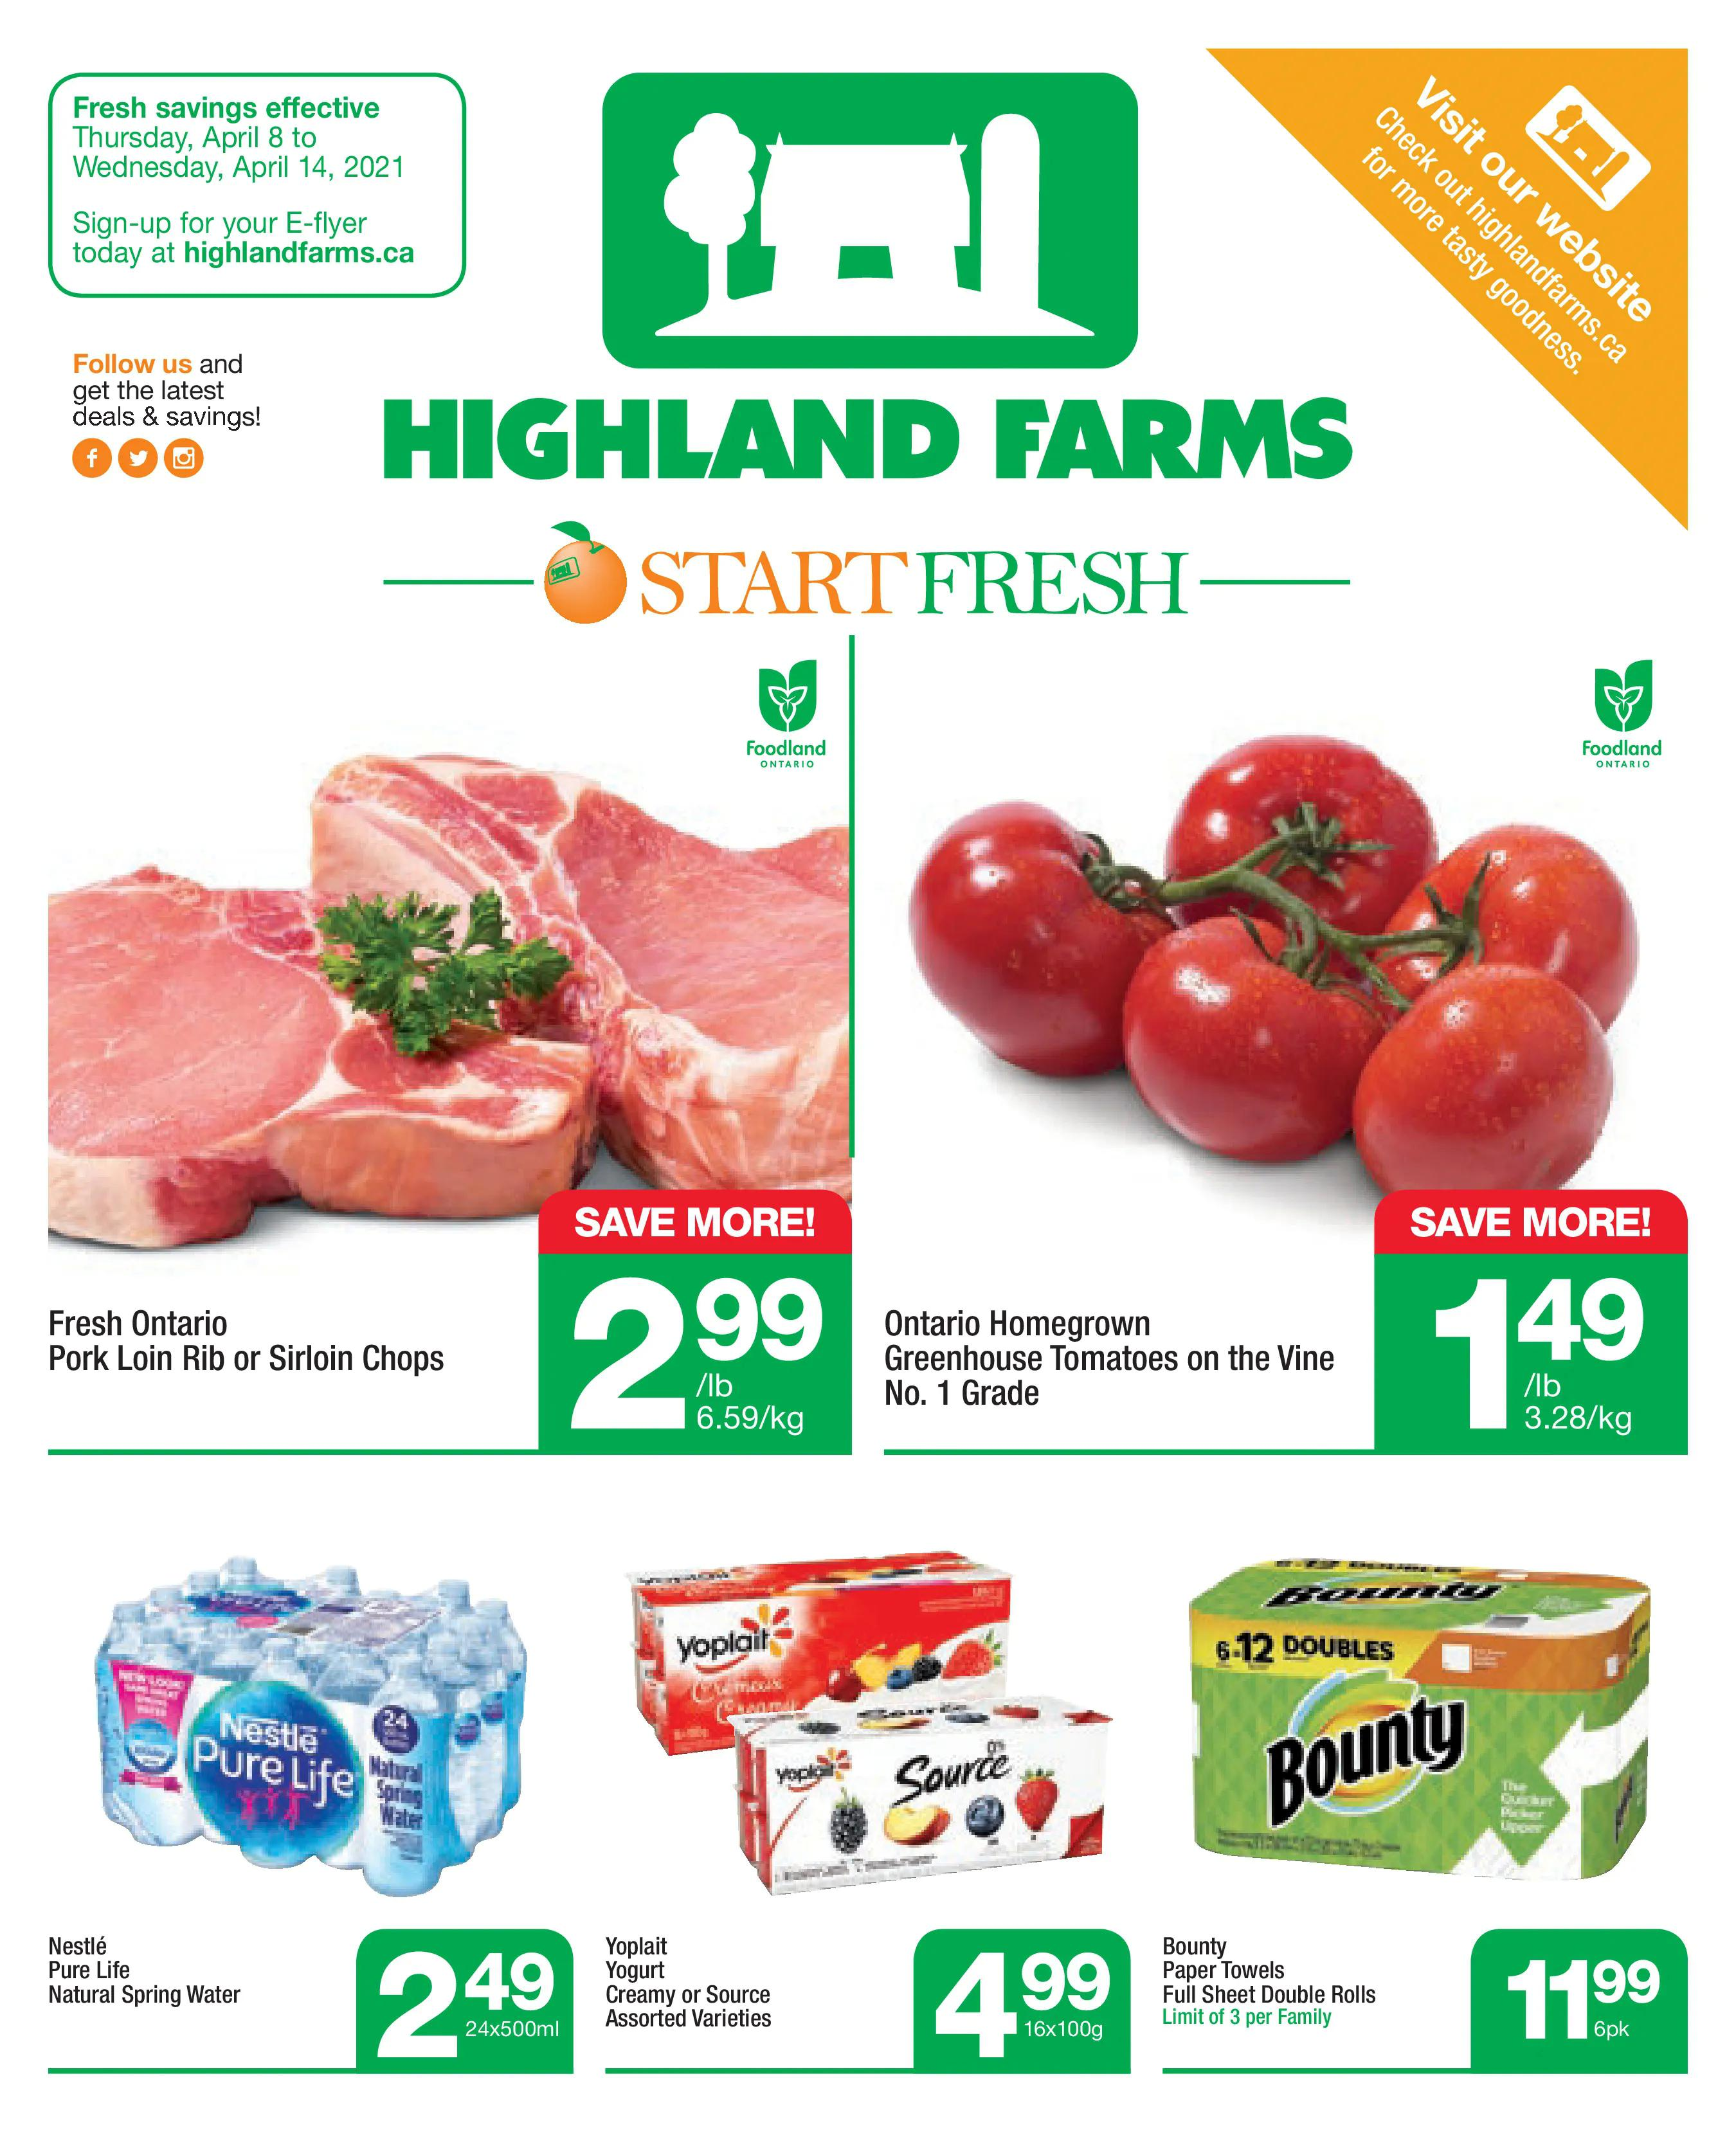 Highland Farms - Weekly Flyer Specials